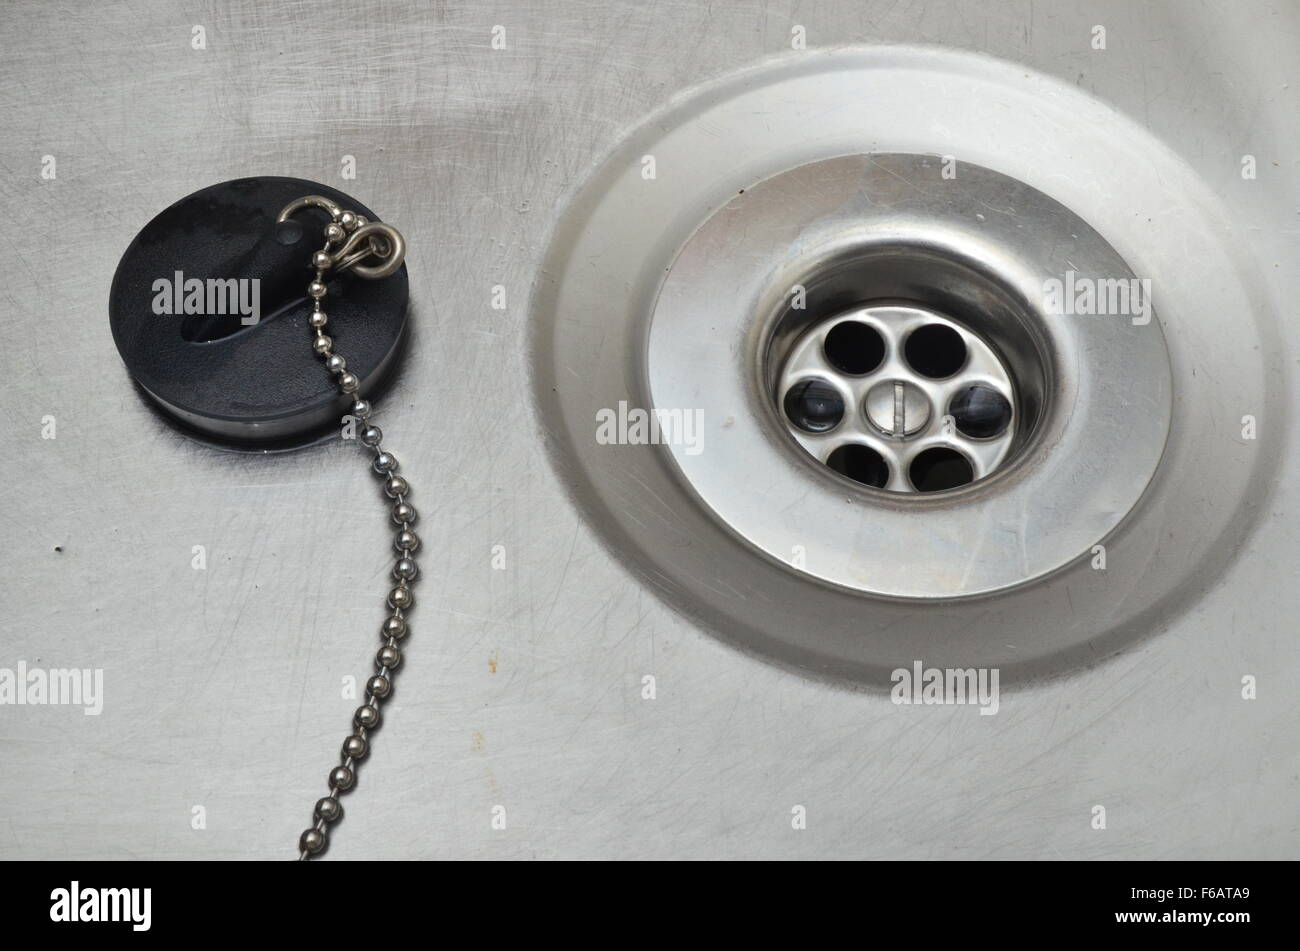 kitchen sink plug hole stock photo, royalty free image: 89978401